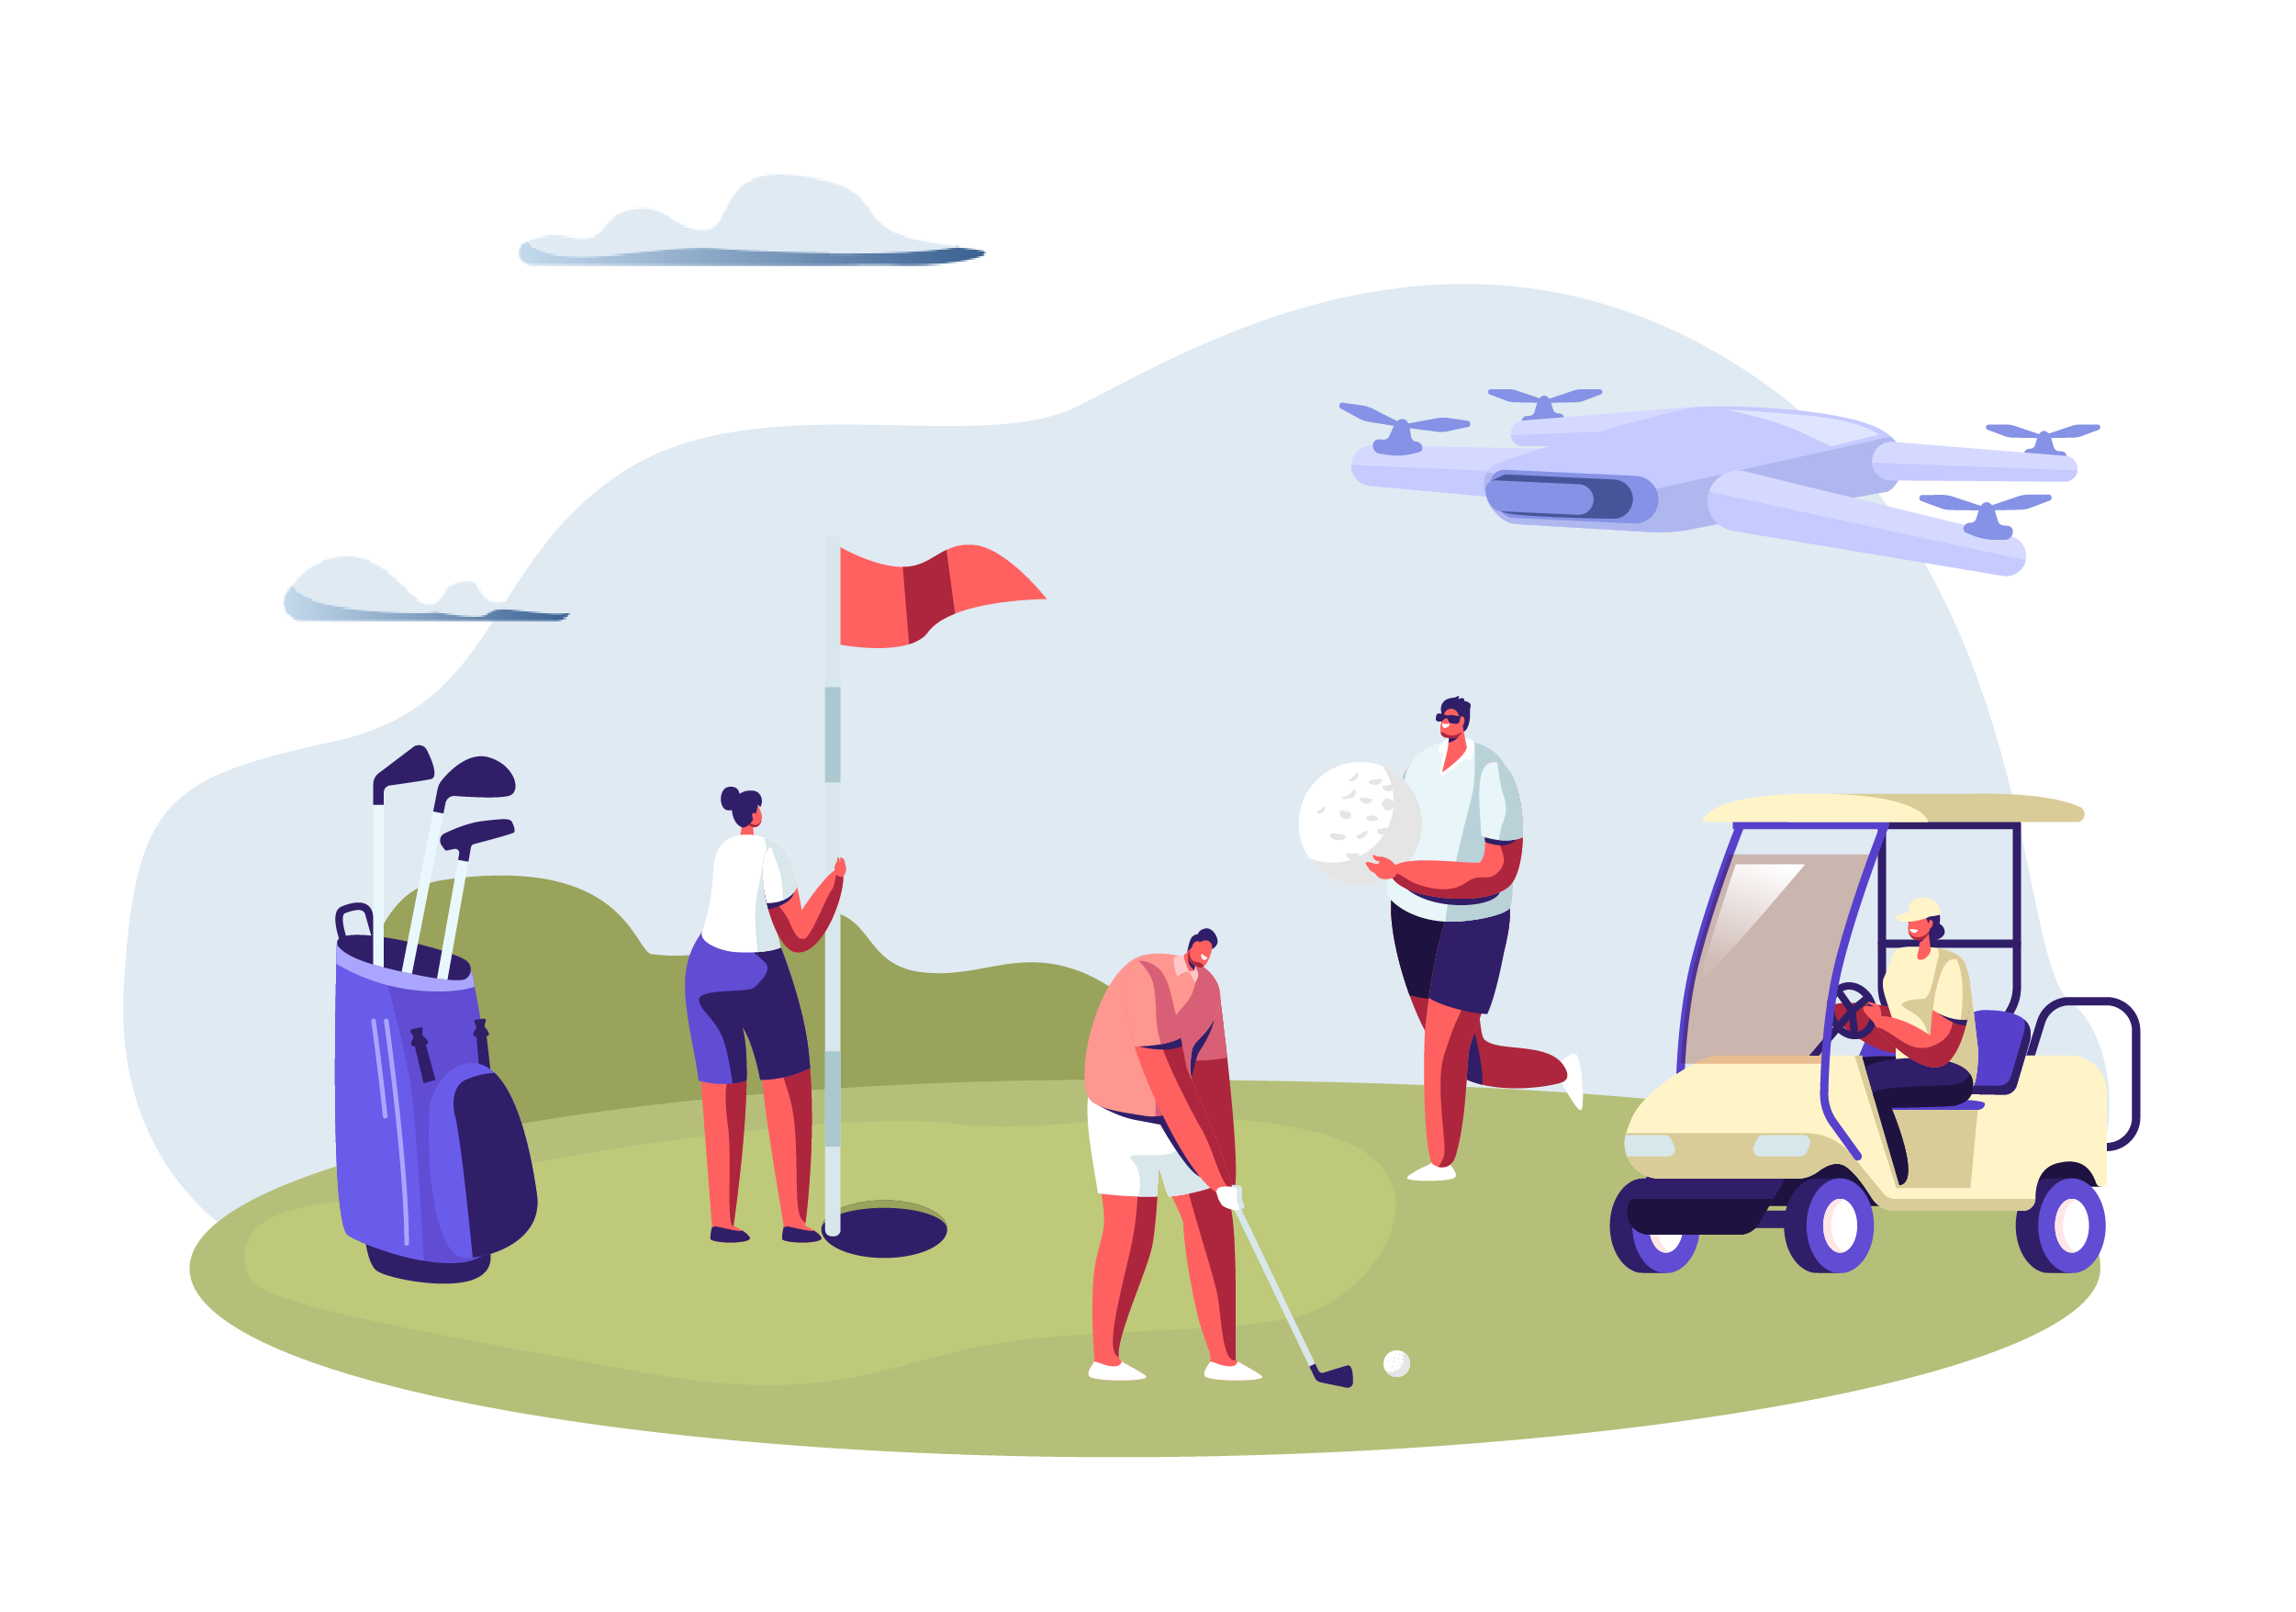 How an AgroDrone Company Assessed a Golf Club for Better Turf Management